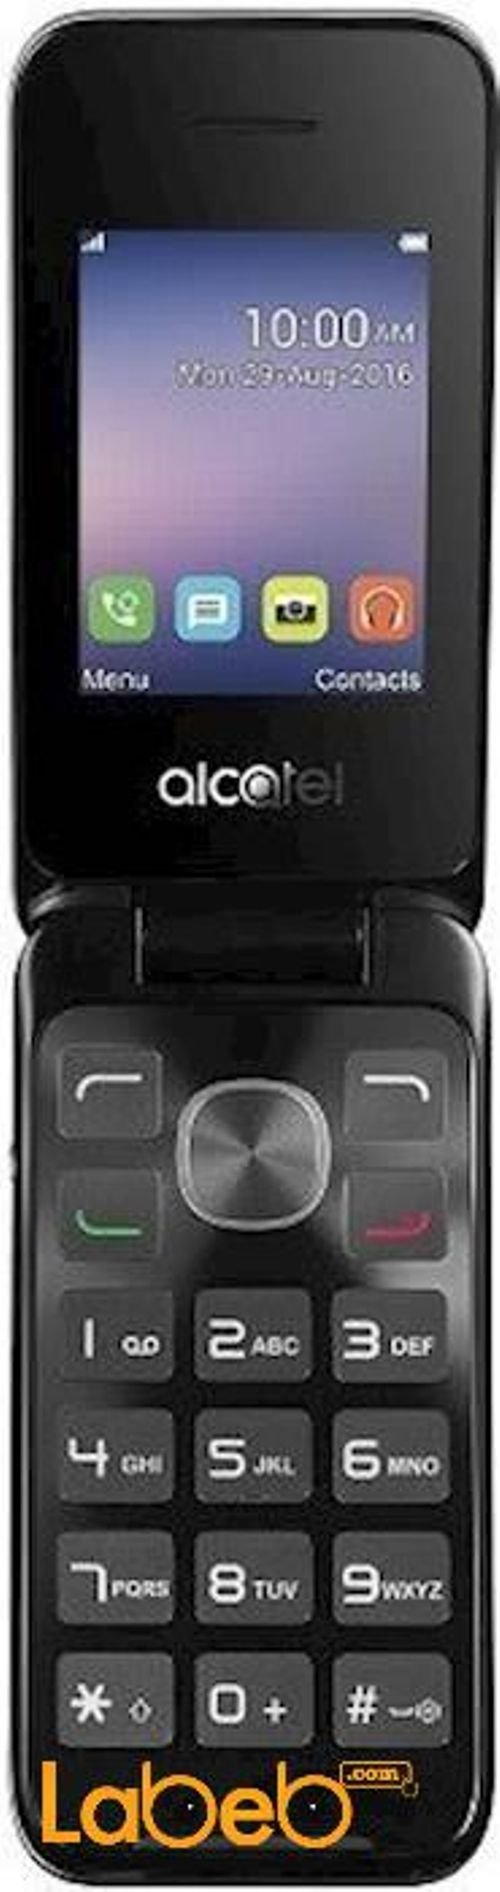 Alcatel 2051D mobile 8GB 2.4inch Silver color